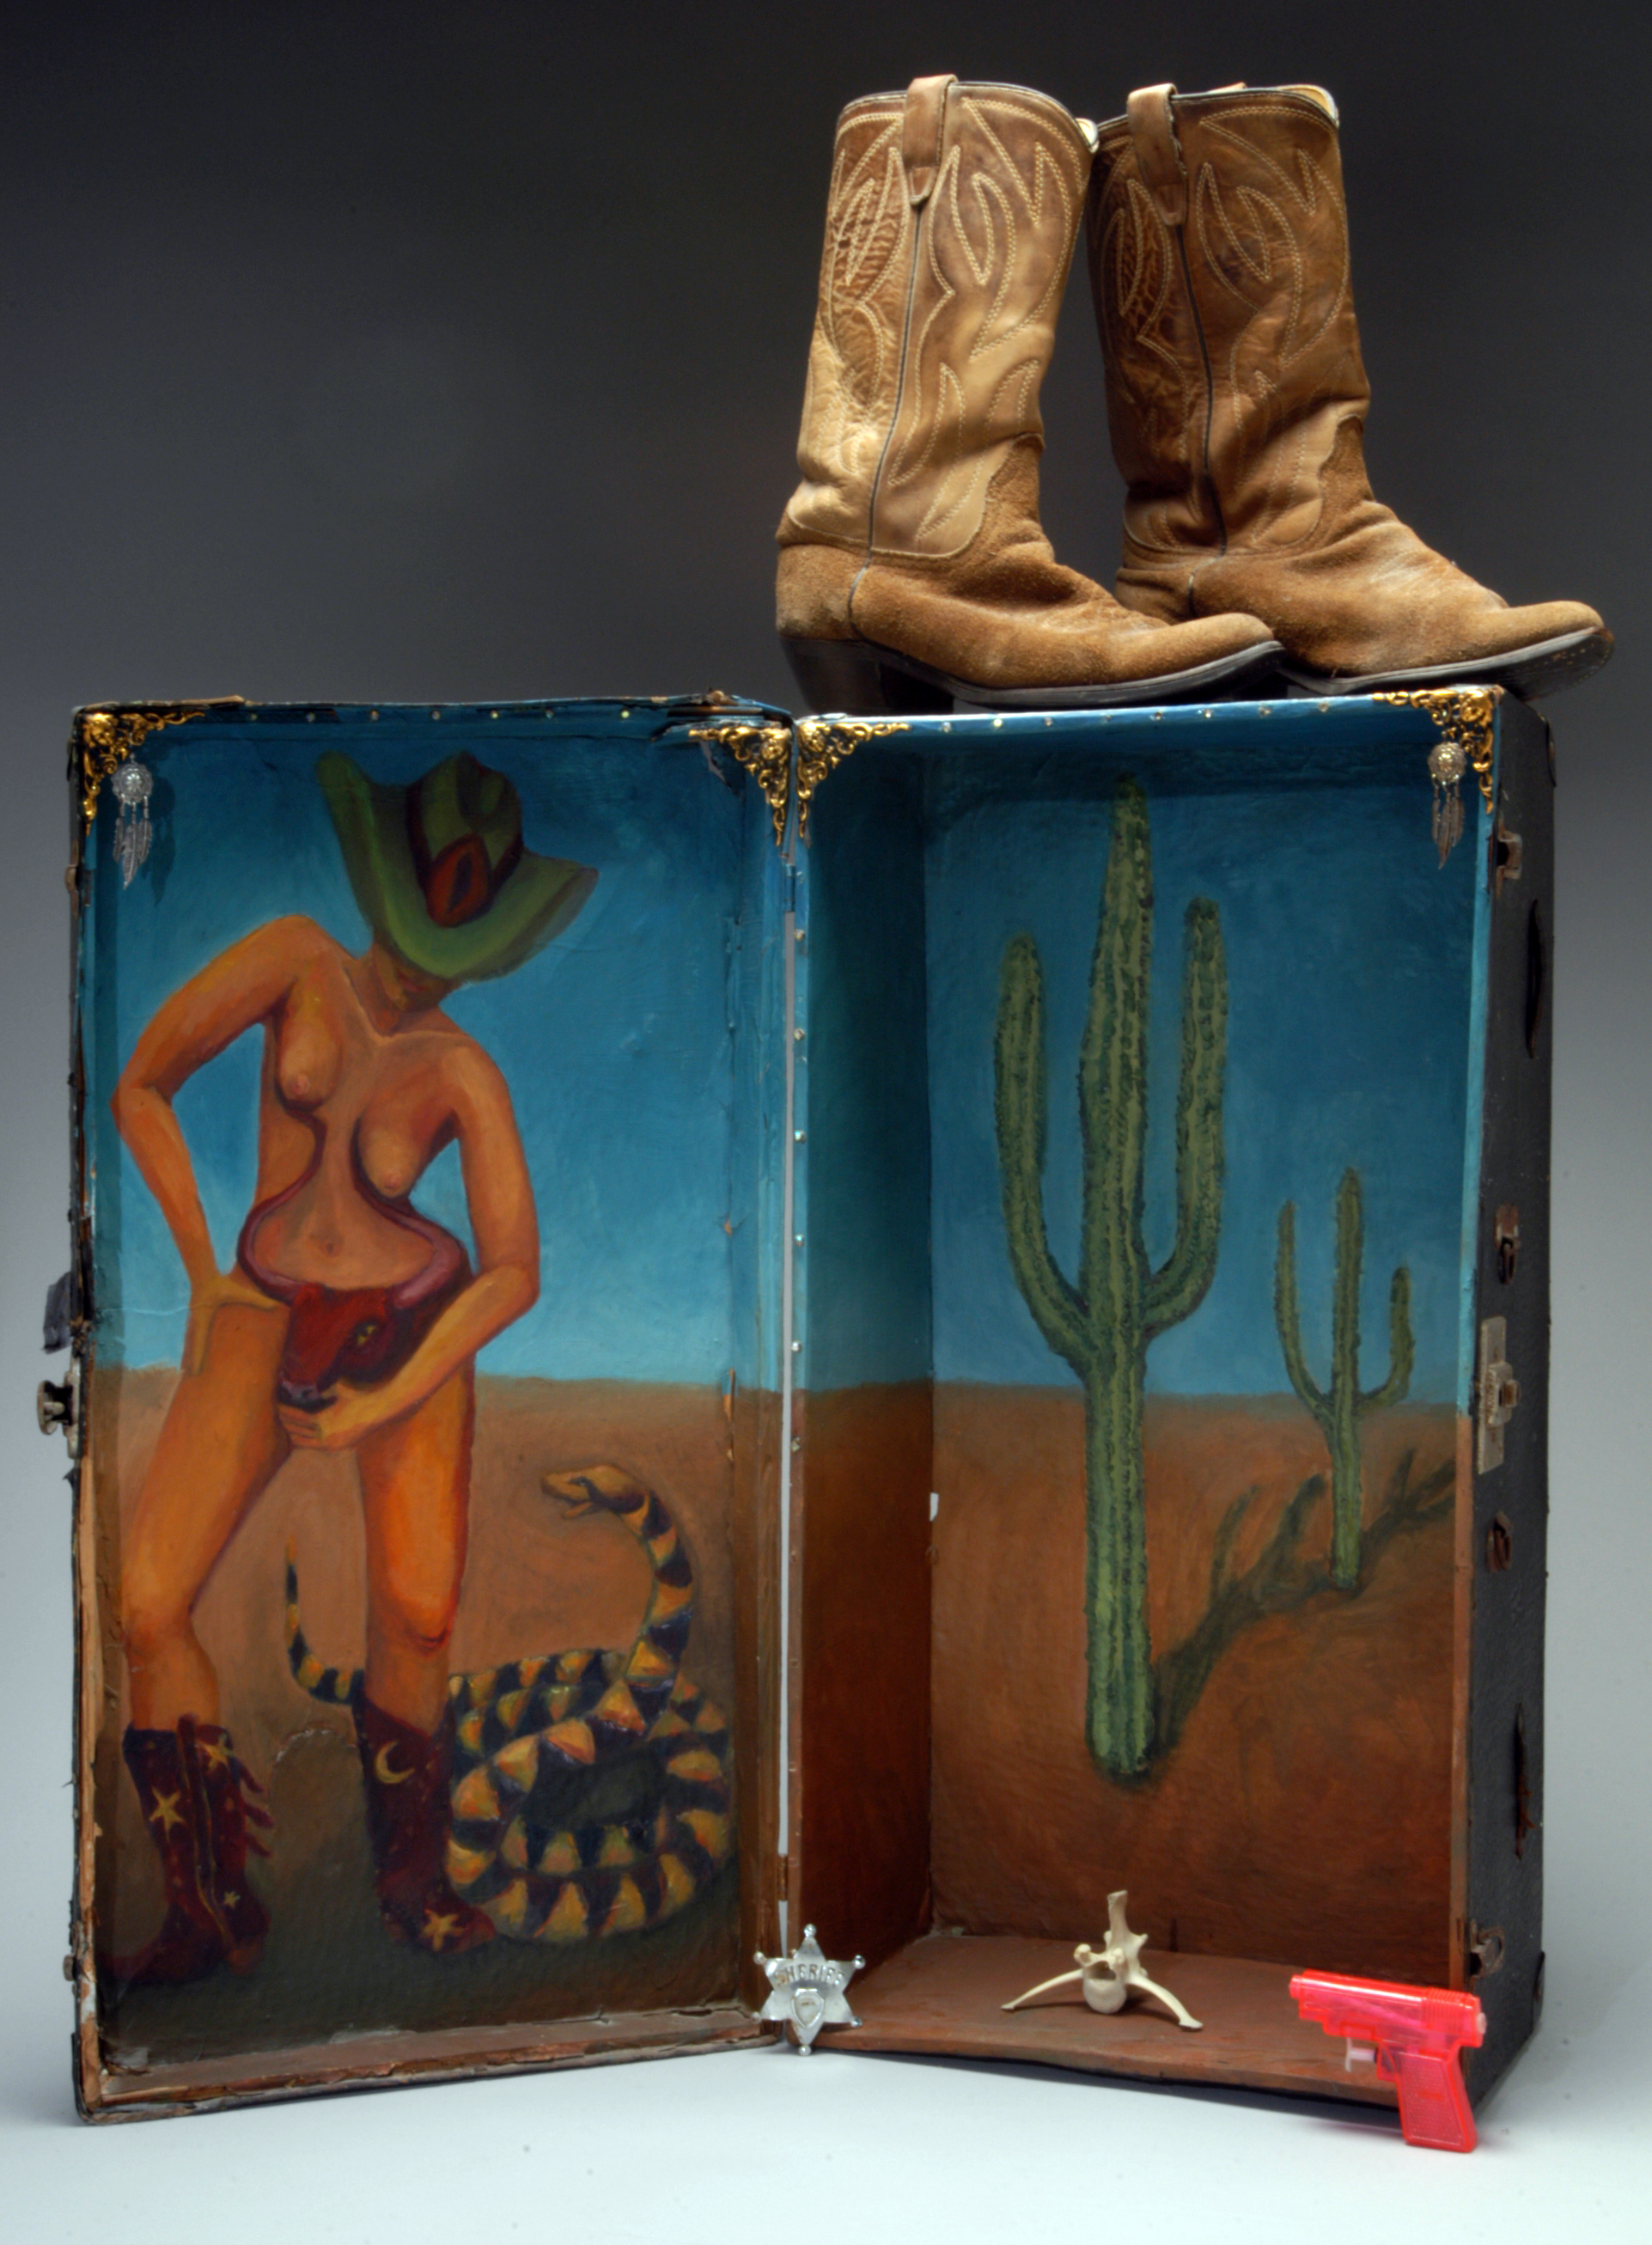 "Bulldyke (Wide Open Spaces), 1992 Oil on trunk, sheriff's badge, bones, squirt gun, boots, 28"" h x 26"" w x7"" deep, Eleanor Ruckman"